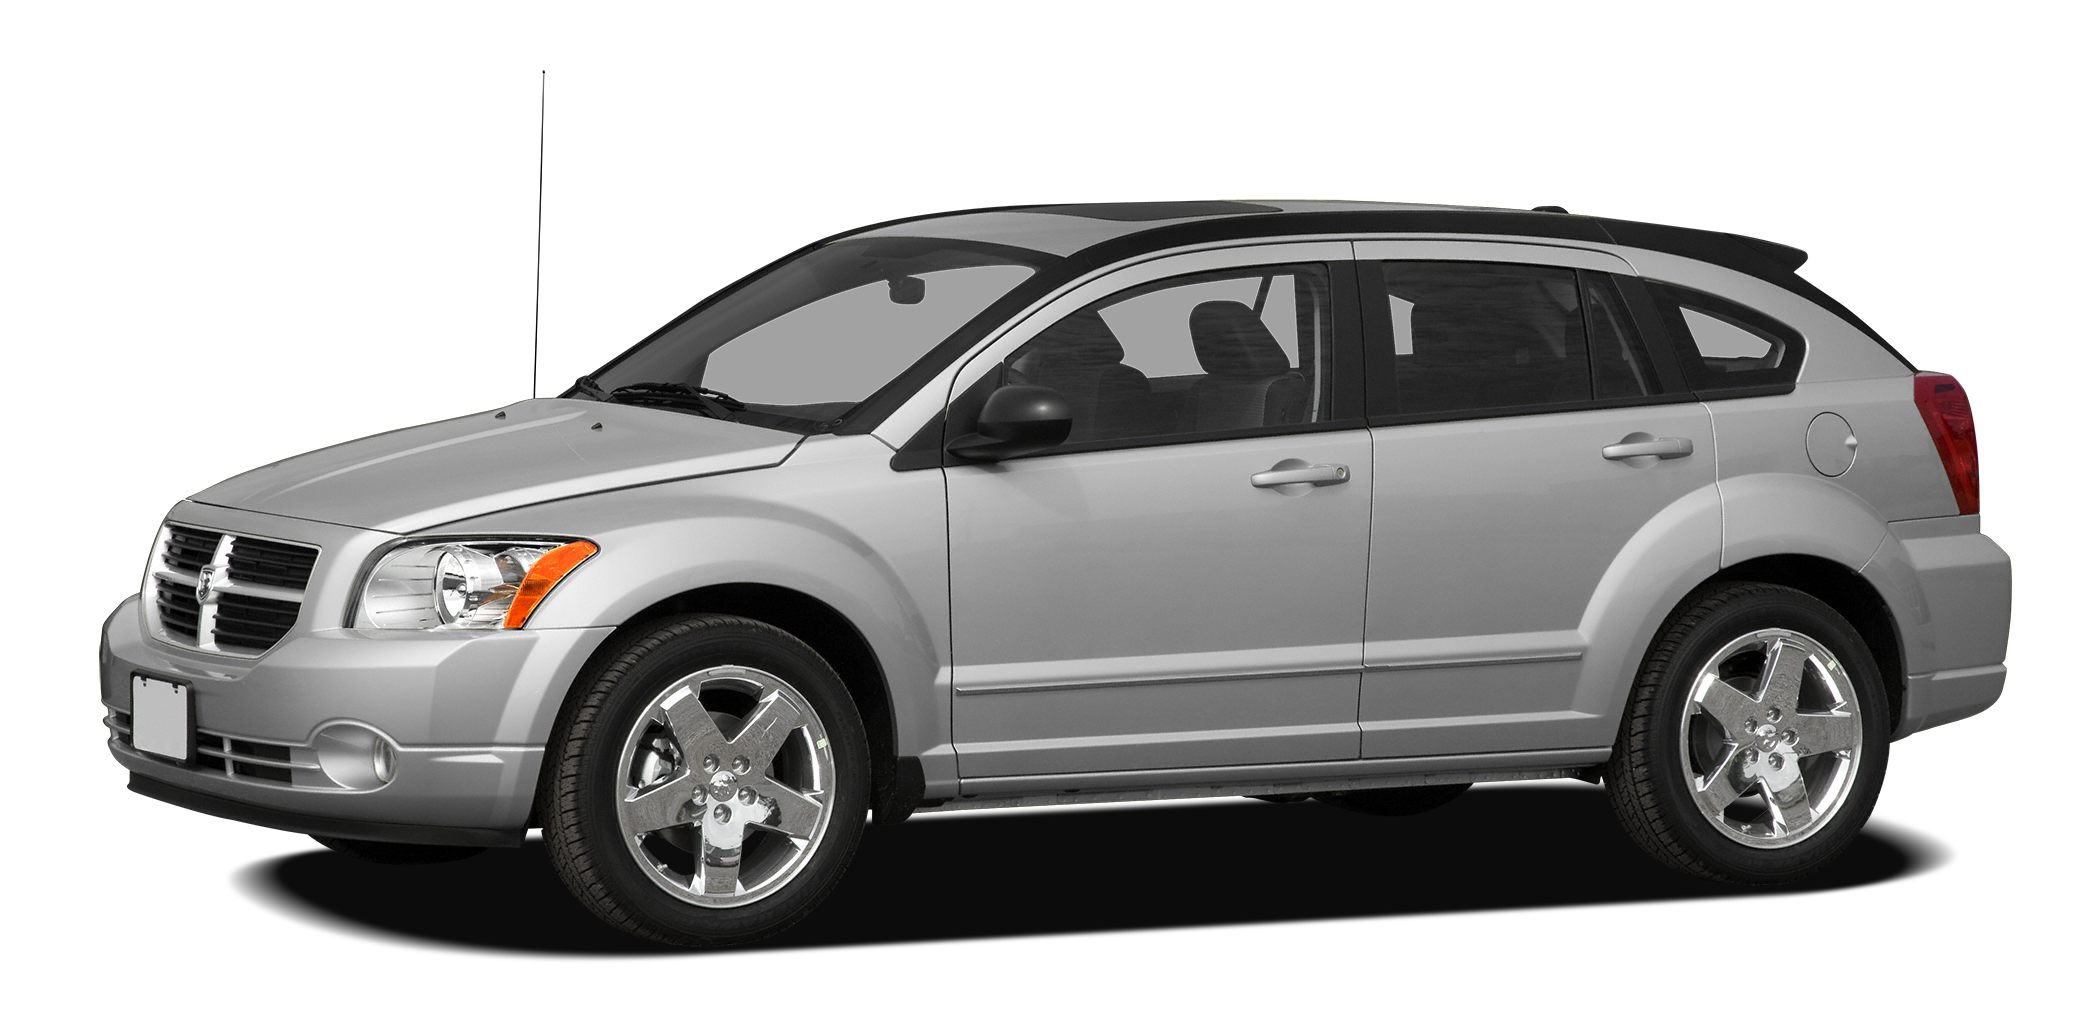 2010 Dodge Caliber SXT This Silver 2010 Dodge Caliber SXT has a Clean CarFax Come on in and take